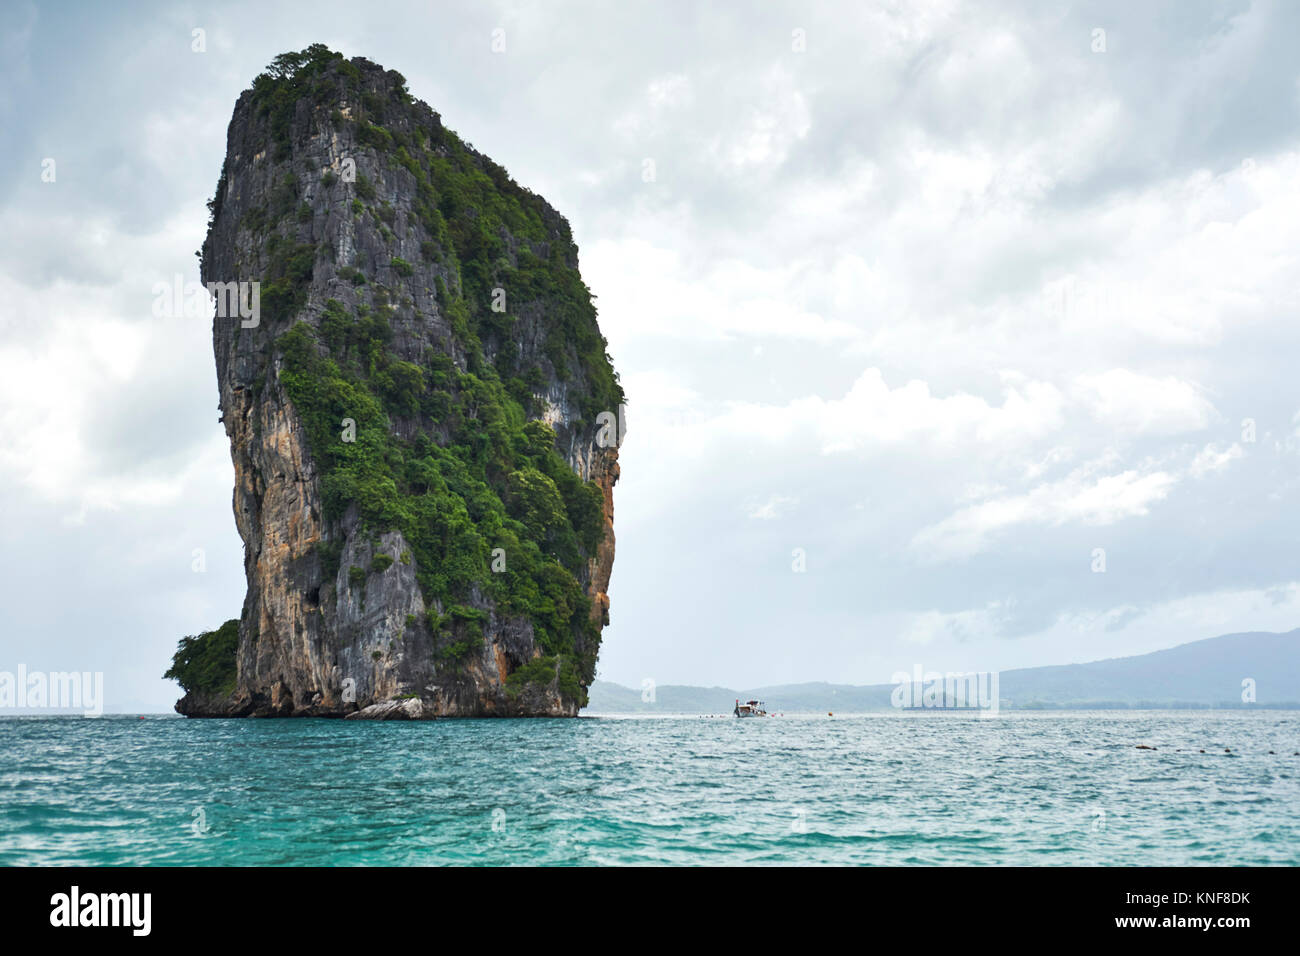 Rock formation protruding from sea, Phuket, Thailand, Asia - Stock Image